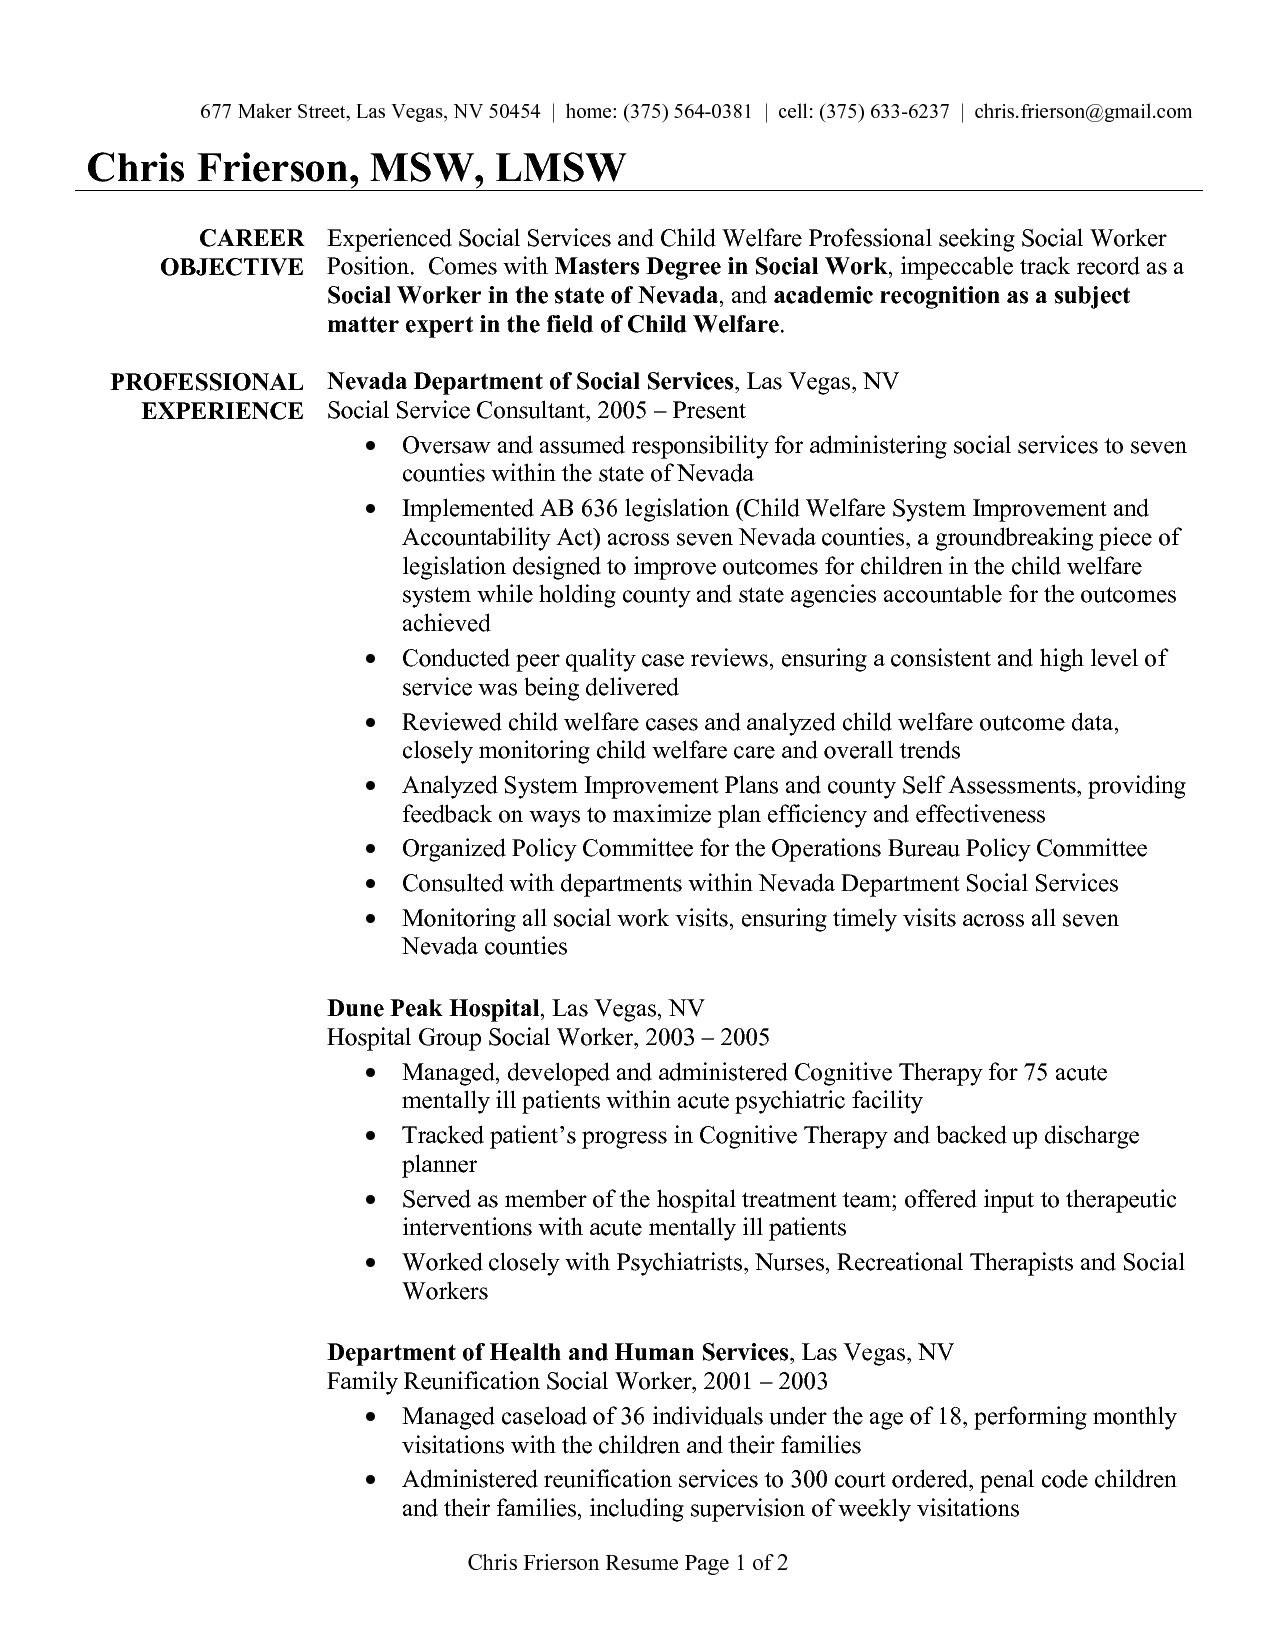 Best Resume Examples Amazing Social Work Resume Examples  Social Worker Resume Sample  Projects